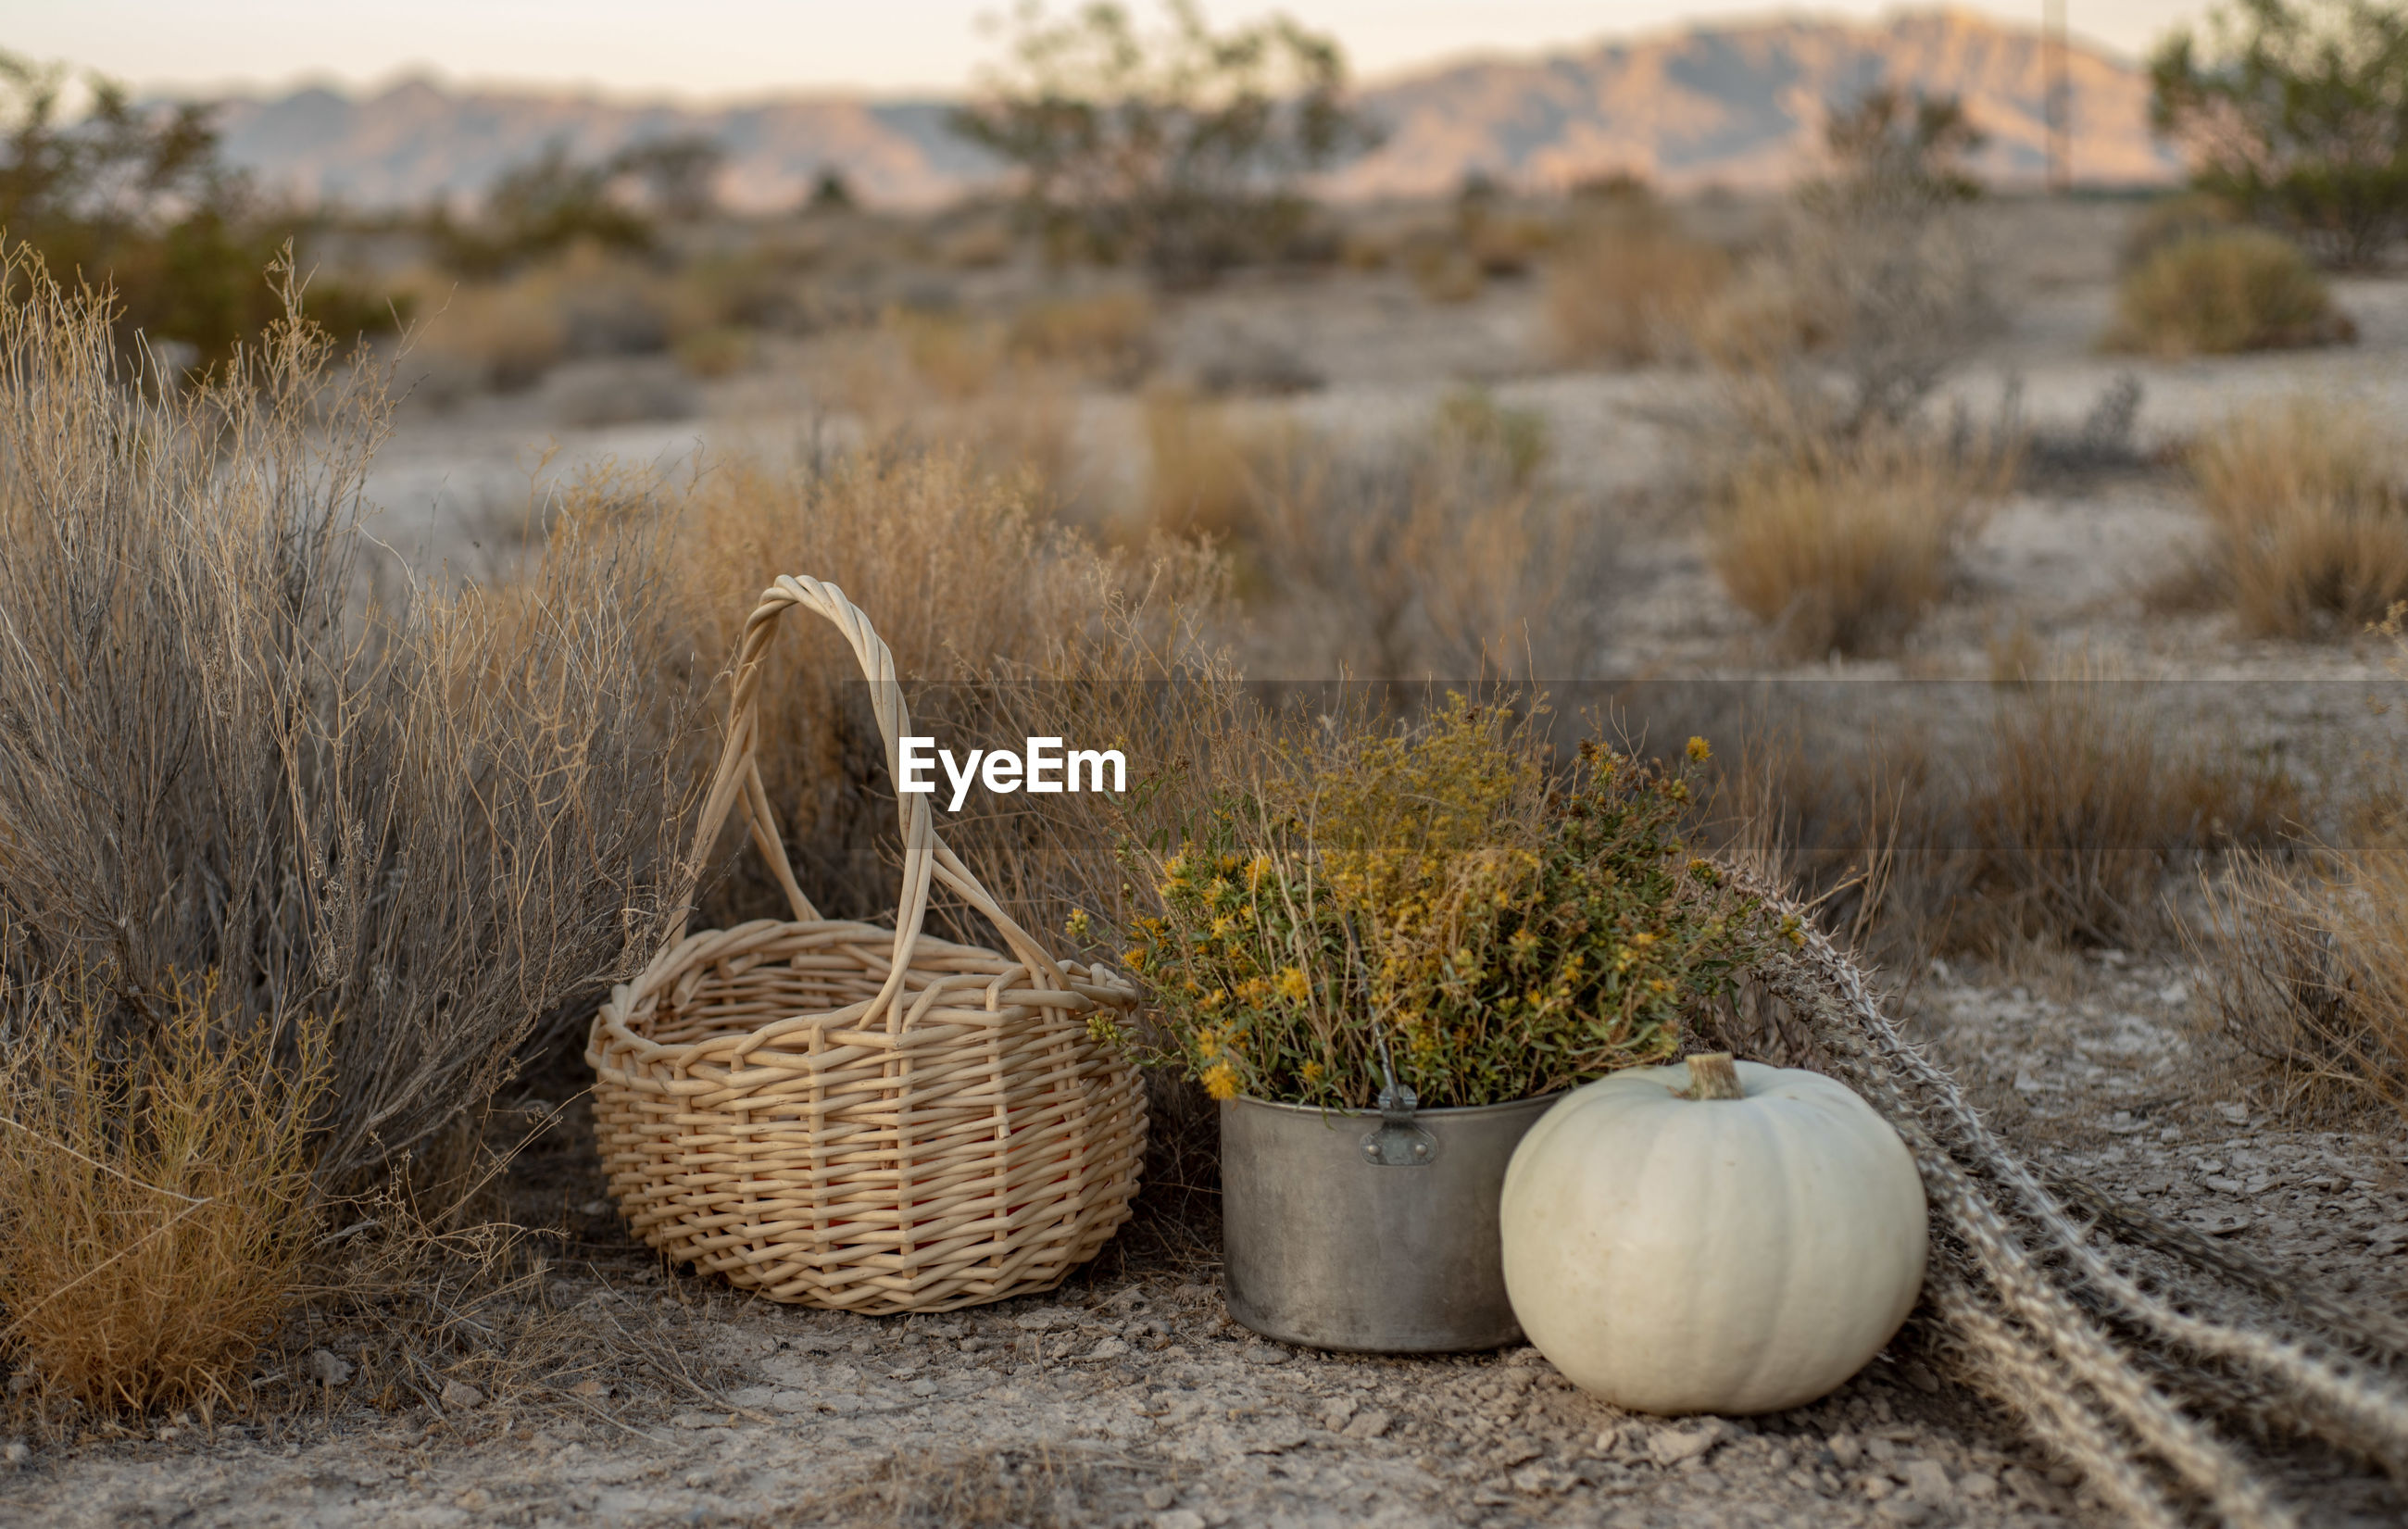 White pumpkin, wildflowers, dried cactus, basket in mojave desert autumn earth colors